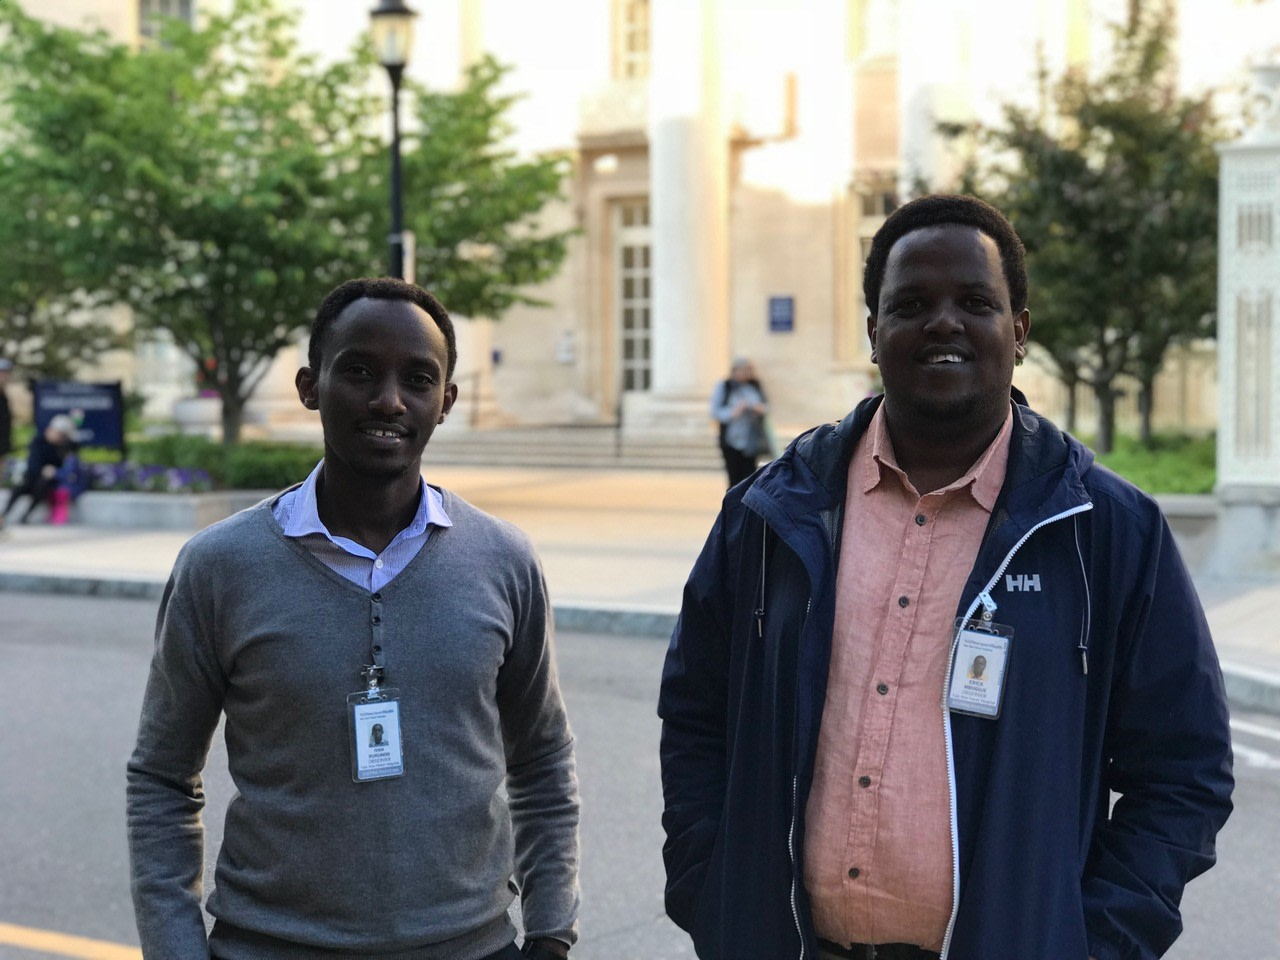 Drs. Ivan Rukundo and Erick Mbuguje in front of Yale Medical School